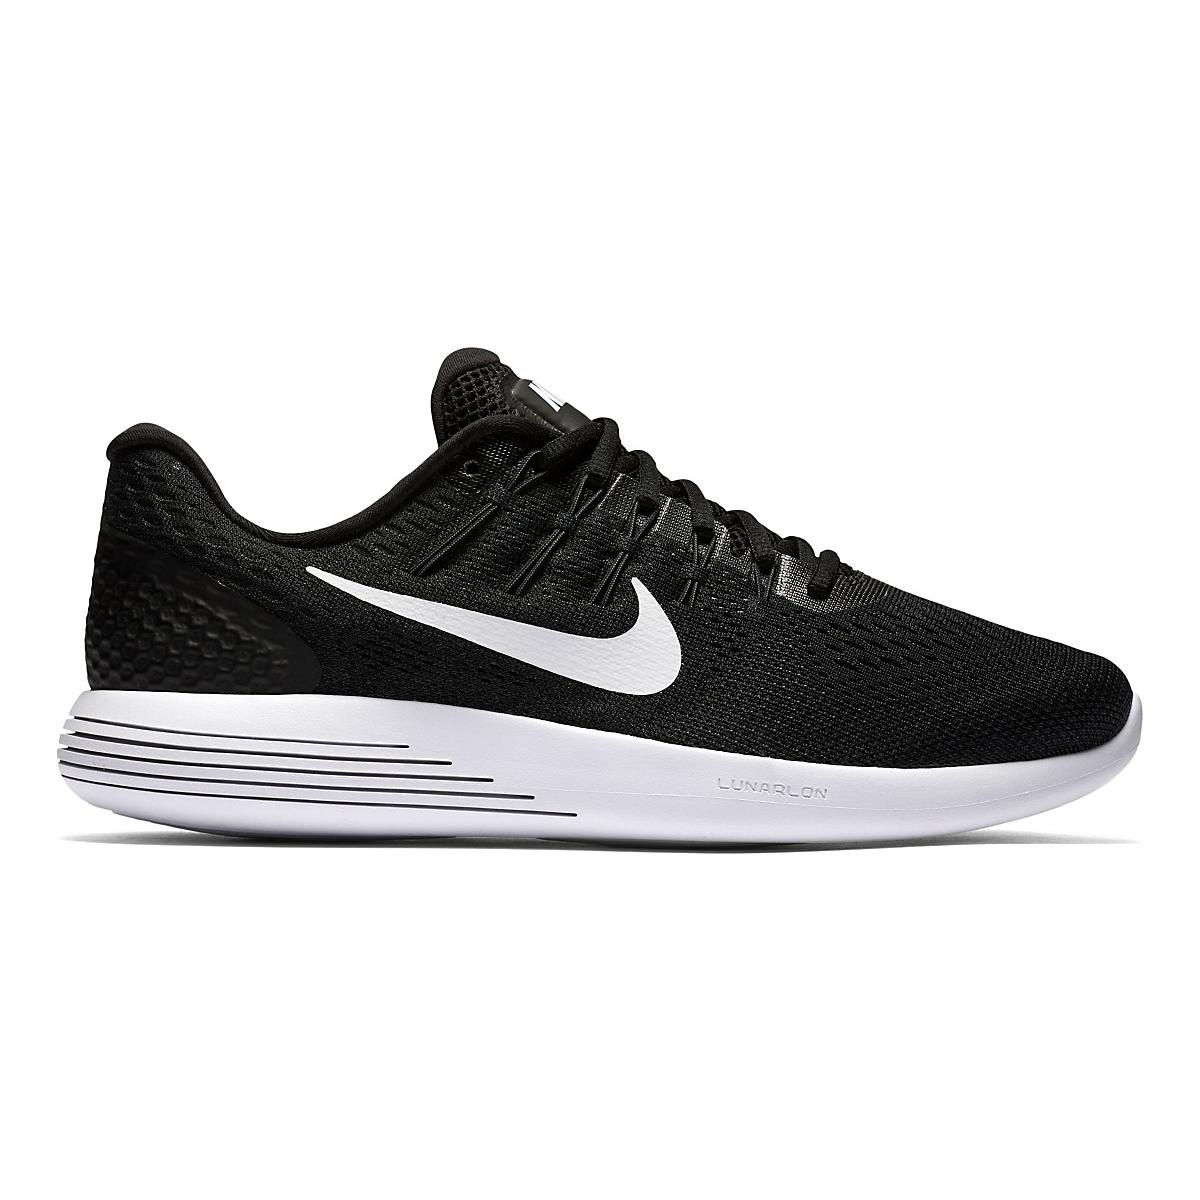 more photos 53194 6d195 Mens Nike LunarGlide 8 Running Shoe at Road Runner Sports